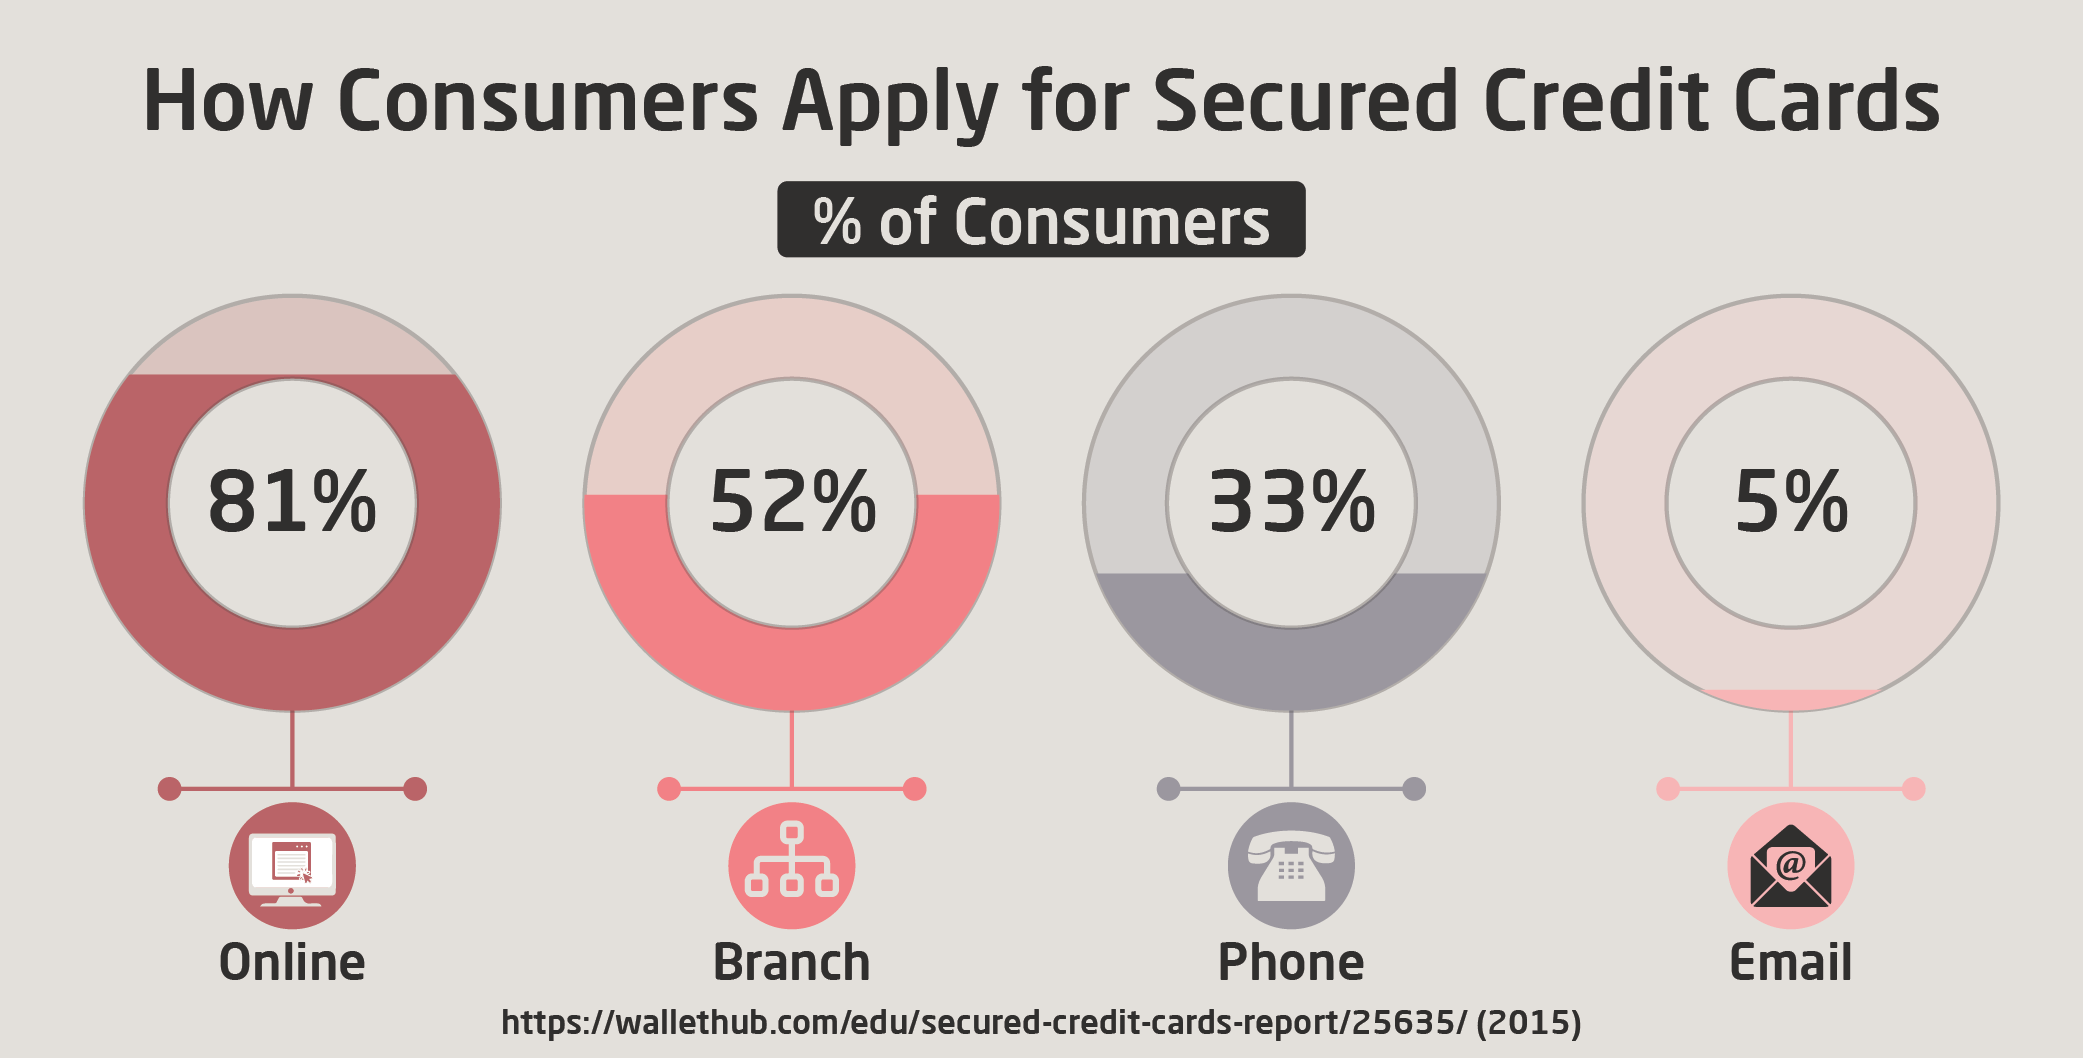 How Consumers Apply for Secured Credit Cards